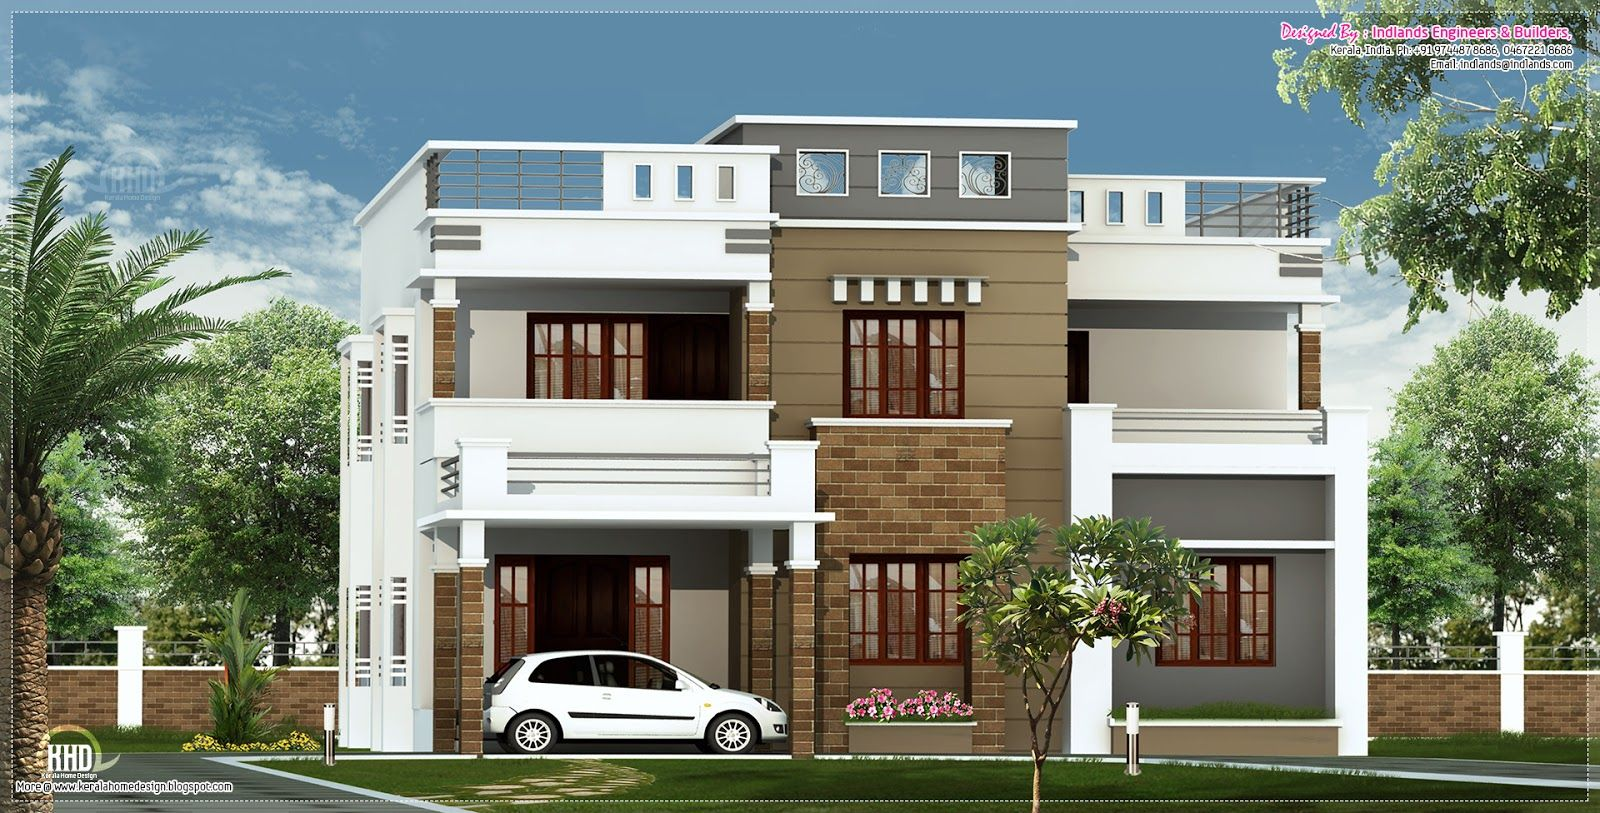 4 bedroom house with roof terrace plans google search New home front design